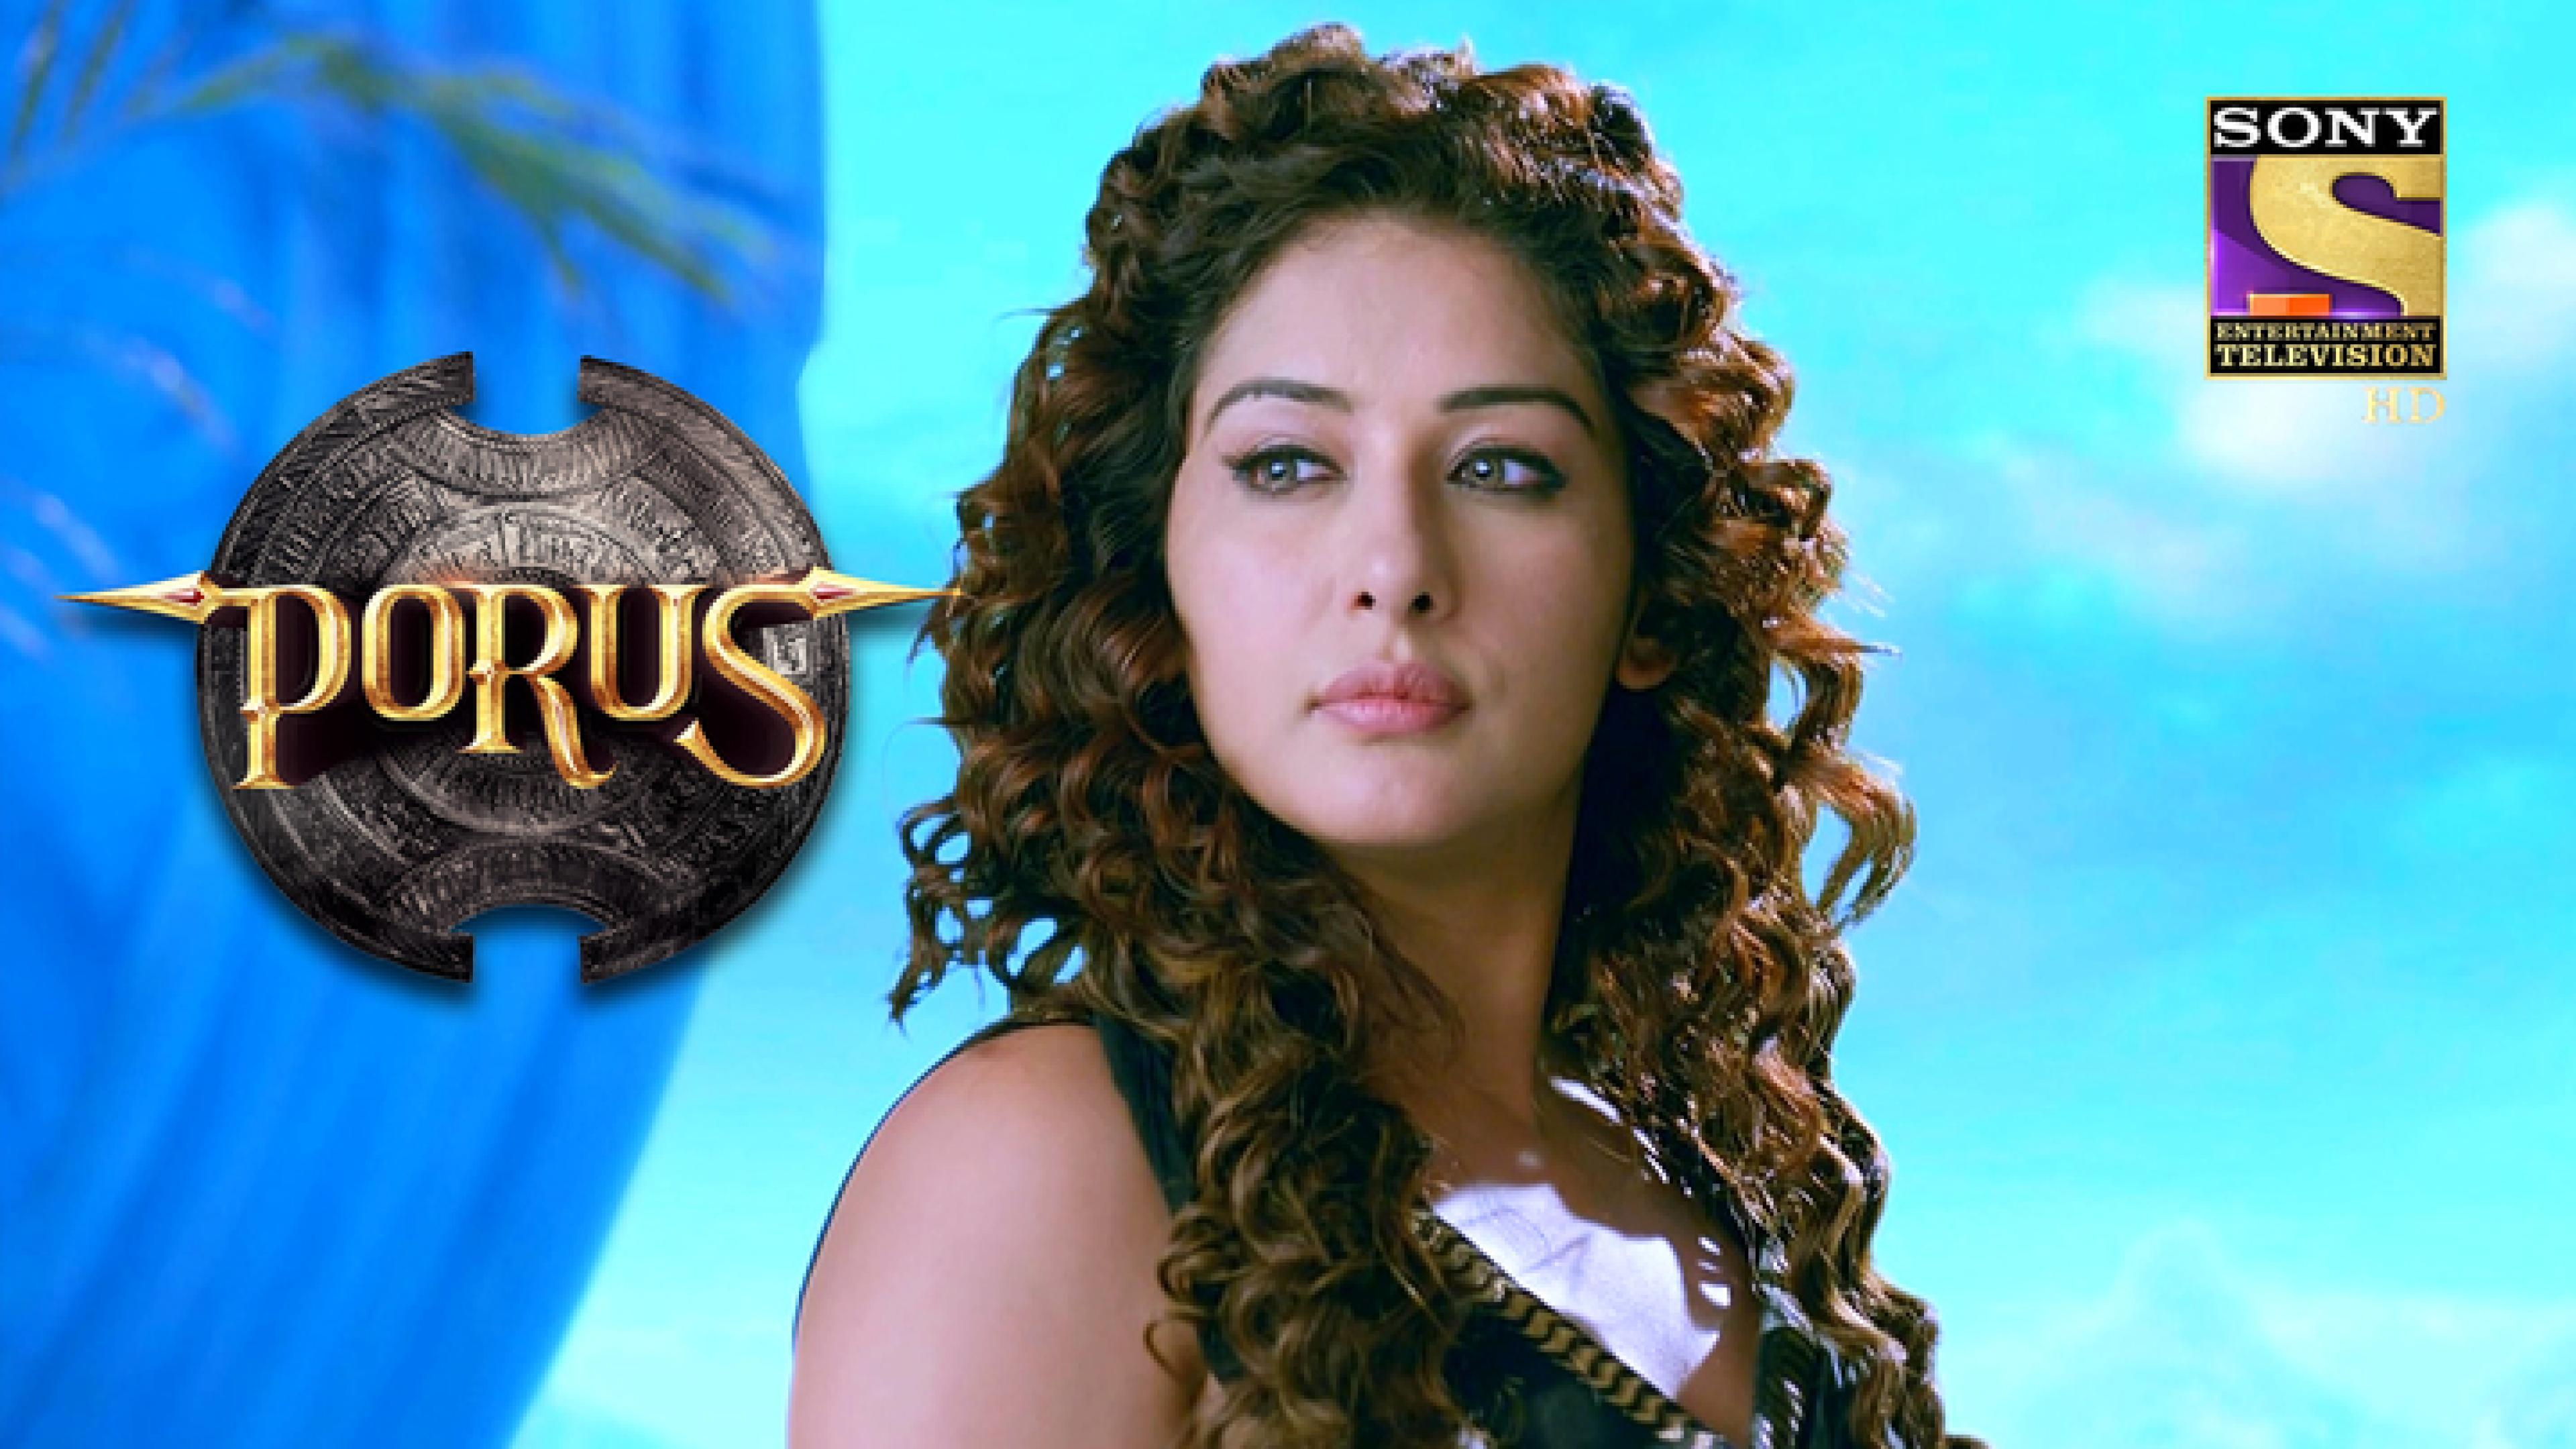 Watch Porus Season 1 Episode 180 Online | Porus Clips on MX Player